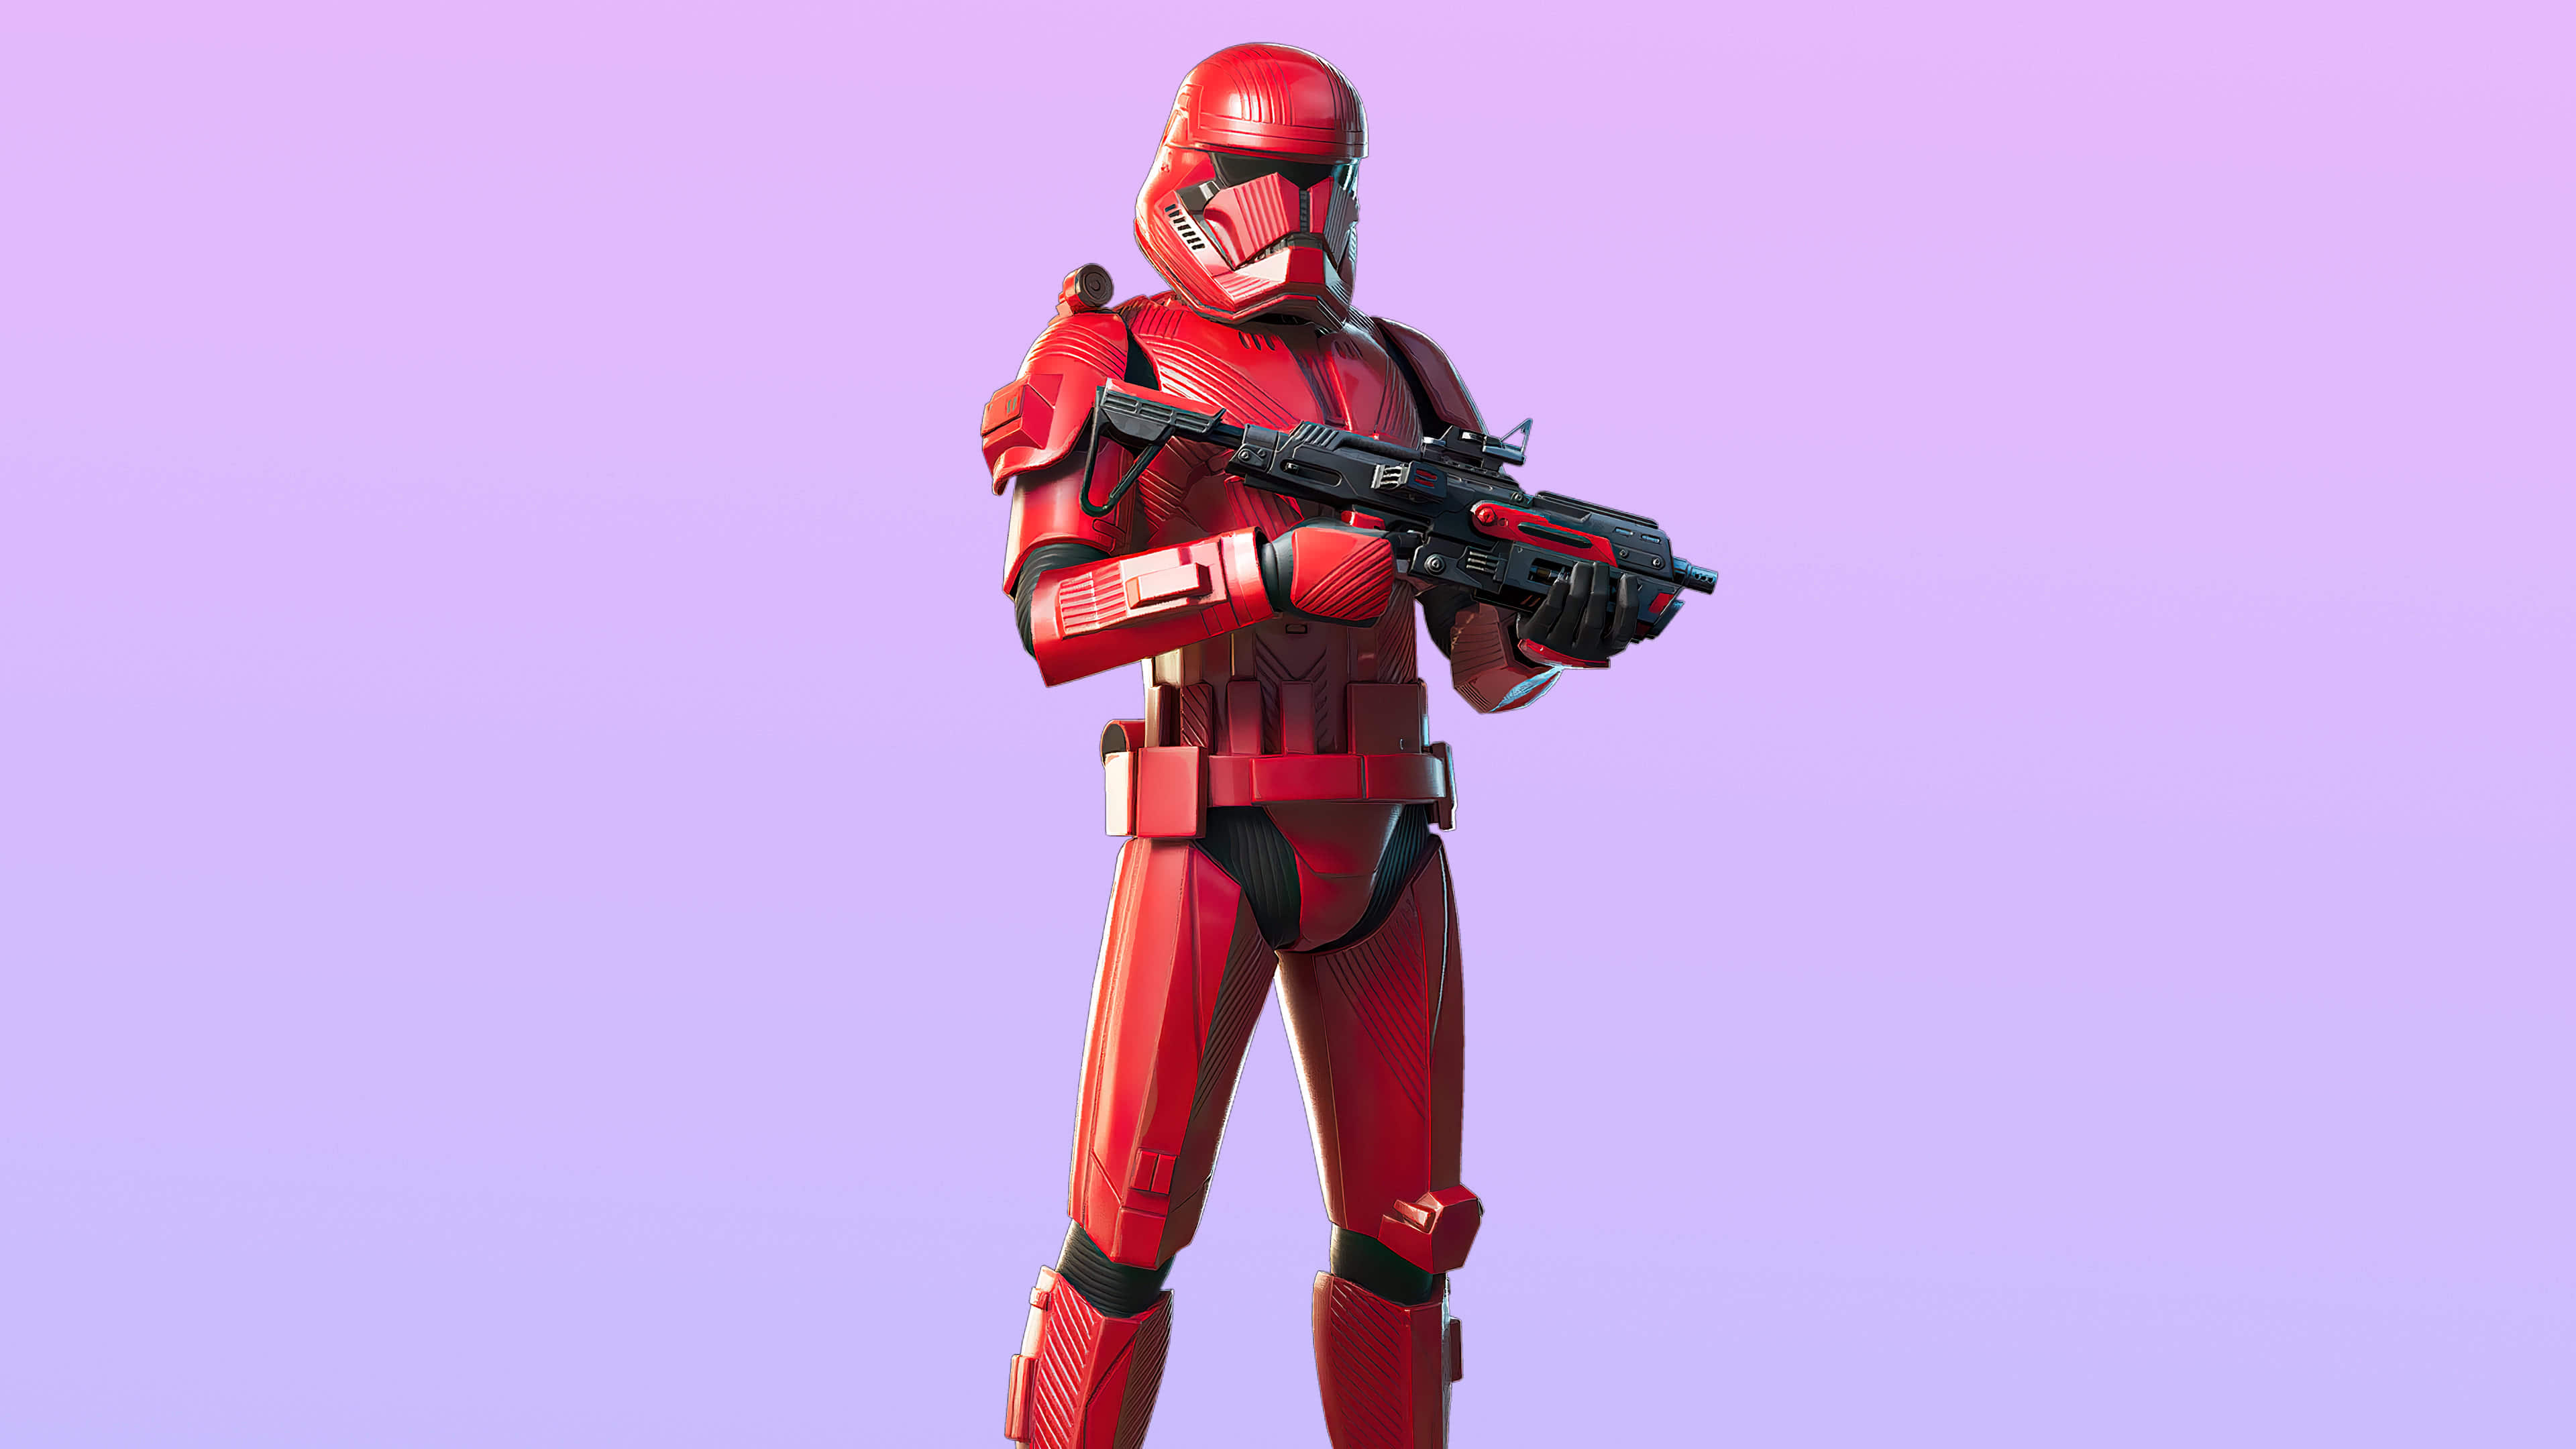 fortnite the new trilogy set sith trooper skin outfit uhd 4k wallpaper